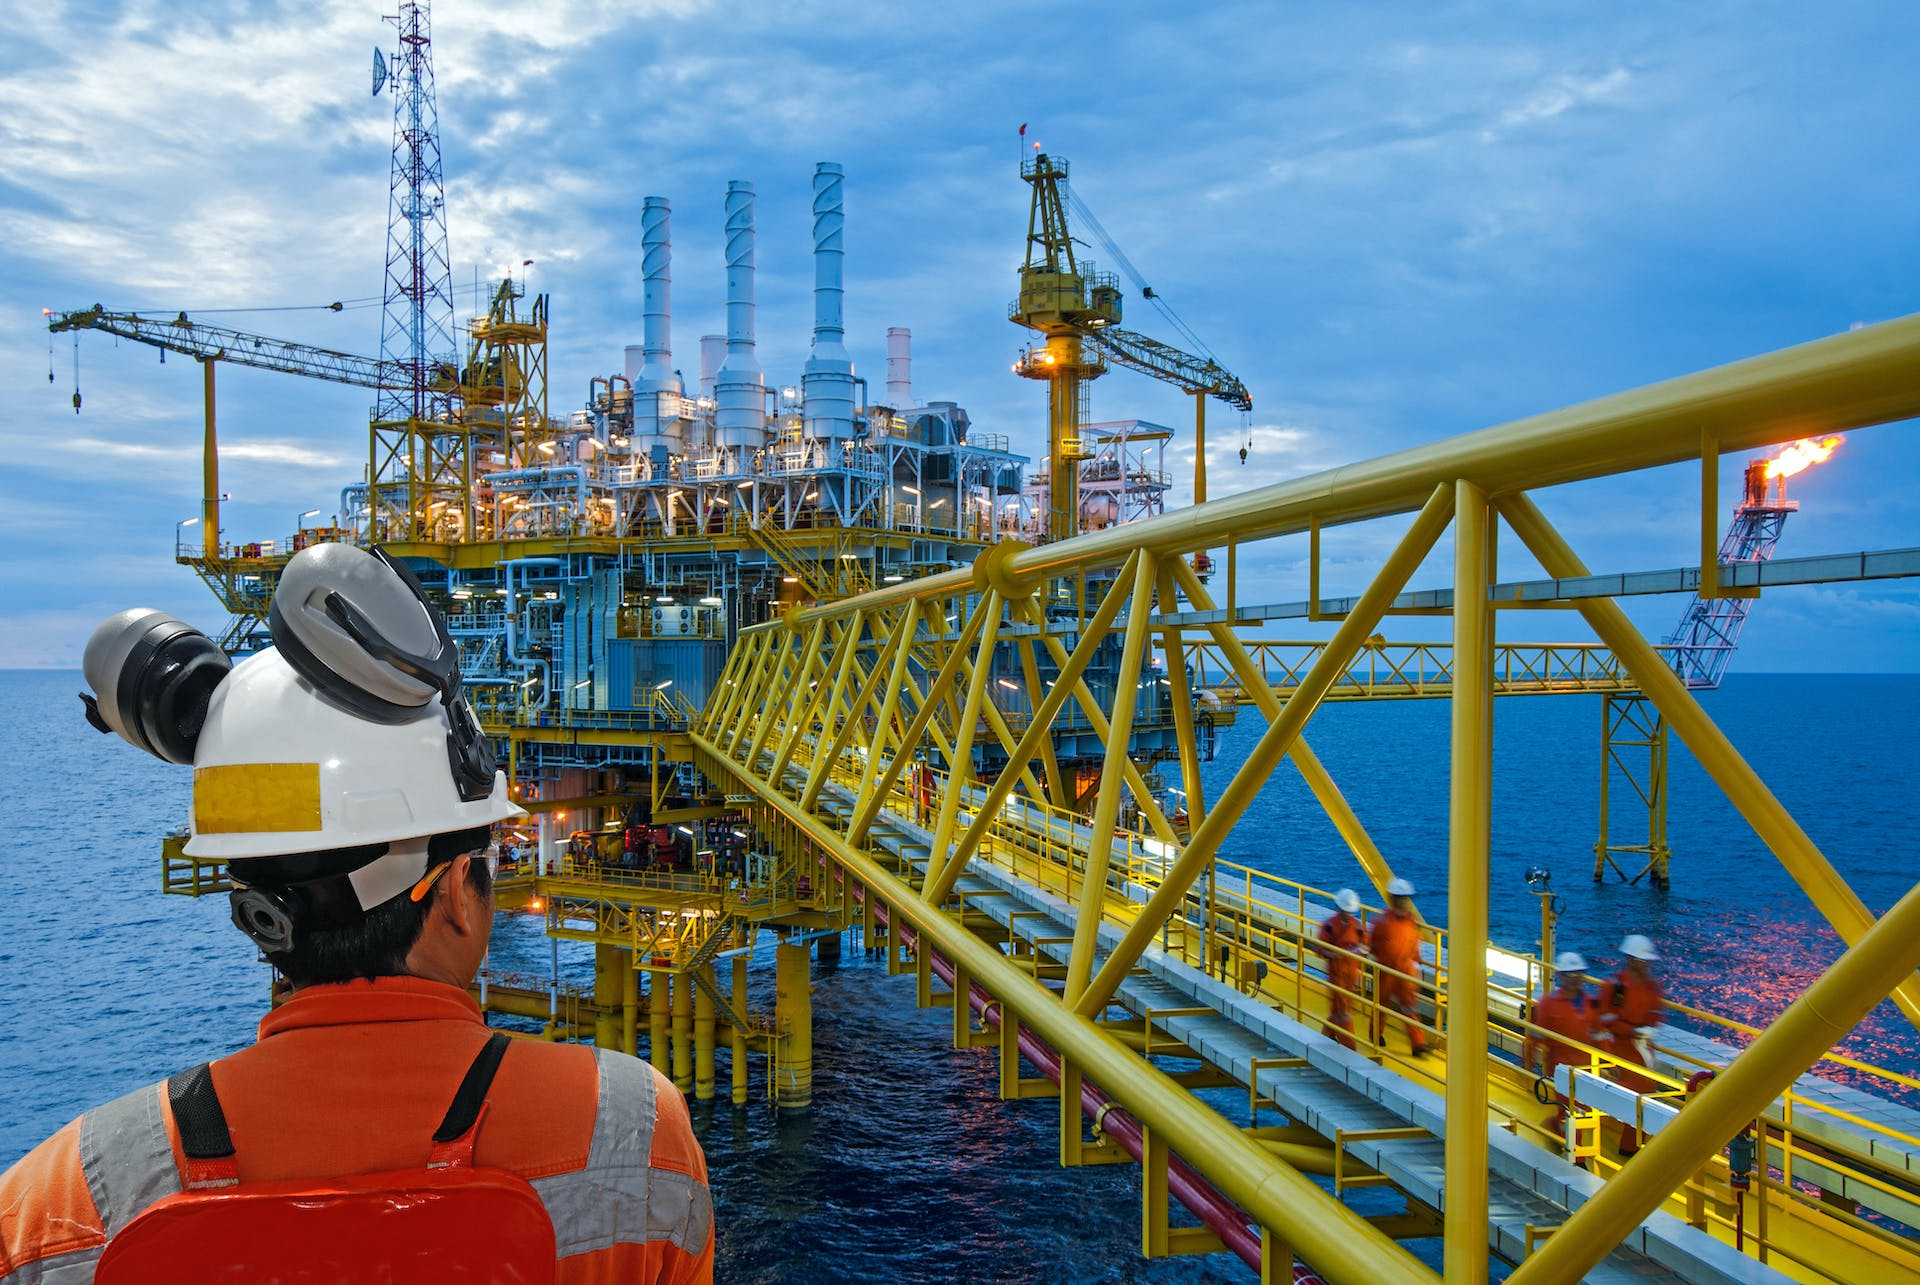 Crew change for oil rigs require charter flights to travel from one place to another.